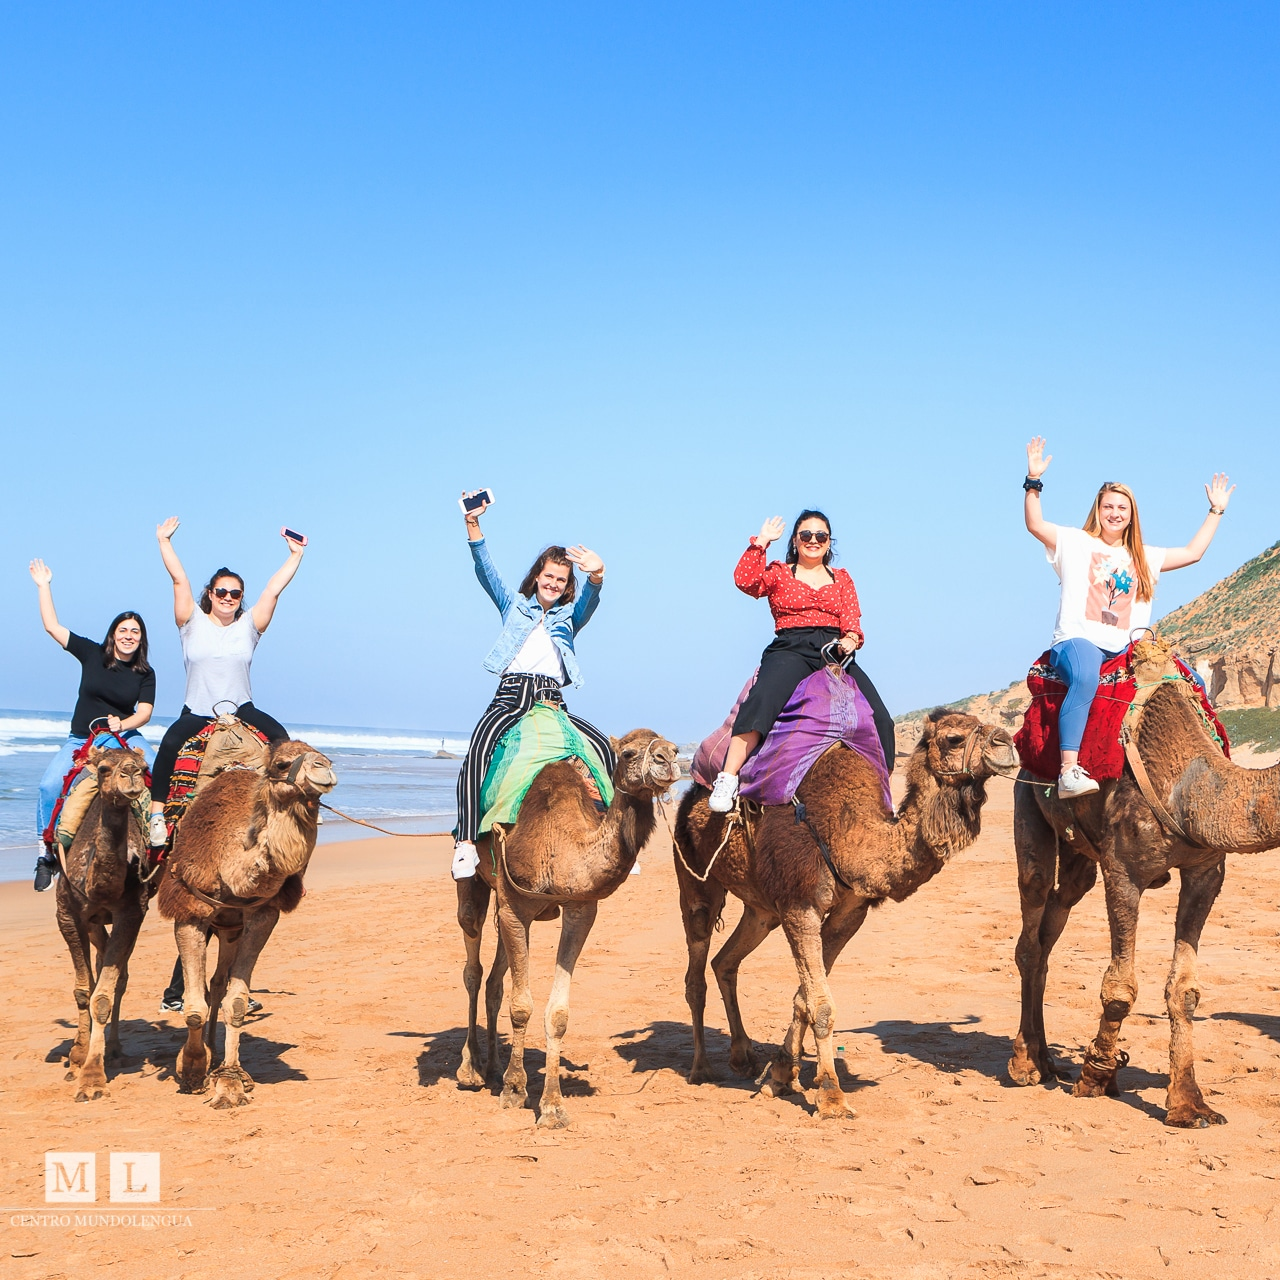 Excursion to Morocco from Spain - semester abroad in Sevilla, Spain